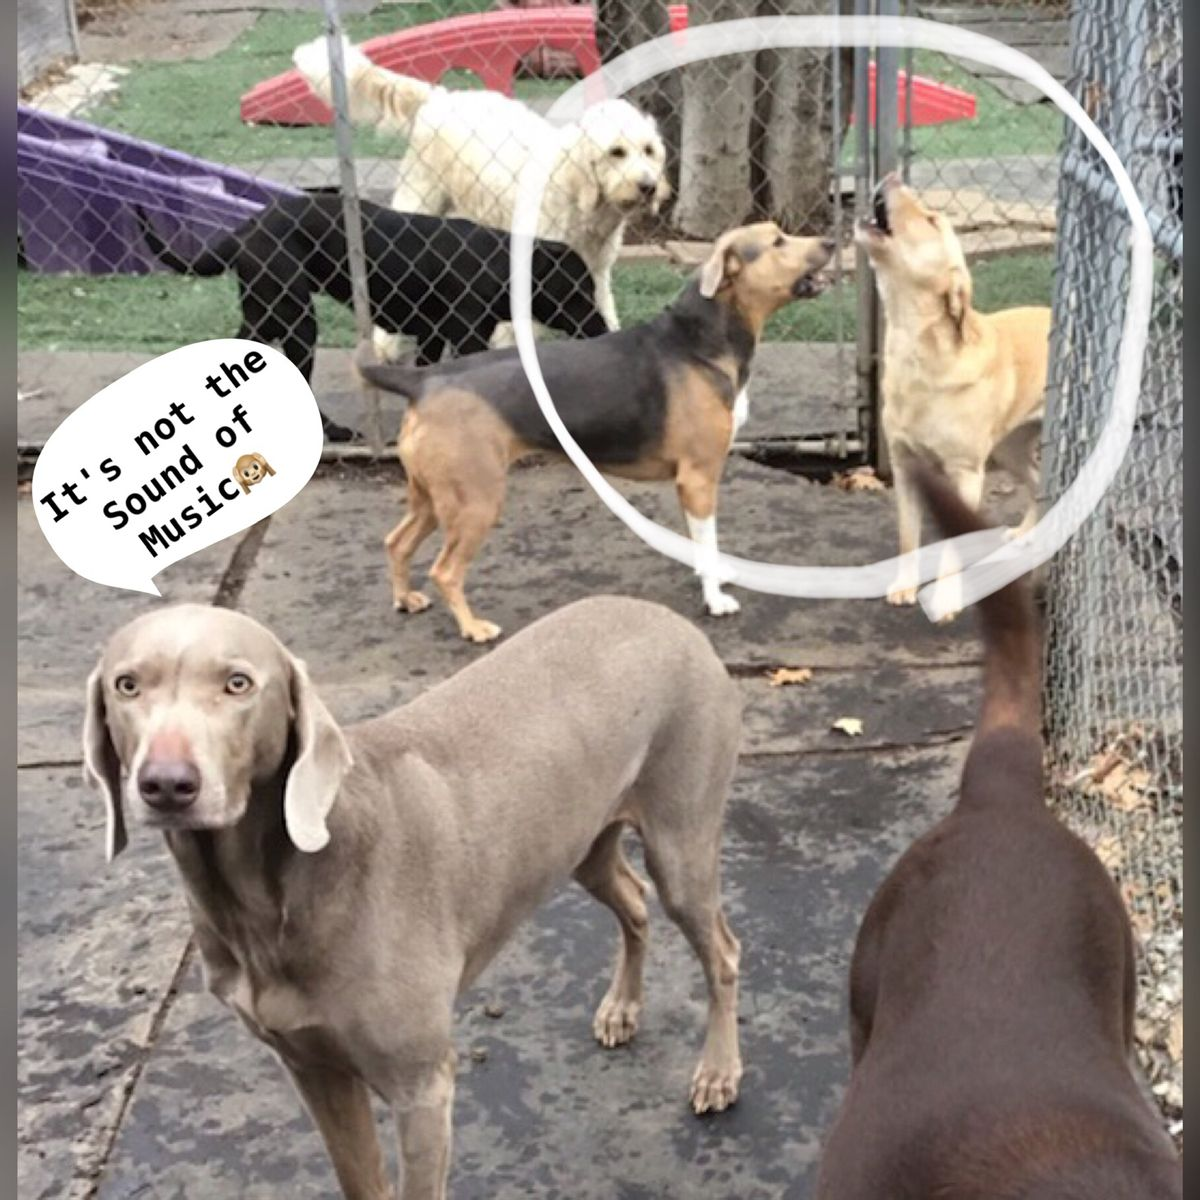 When Your Friends Are Having A Little Too Much Fun Gottalovedogs Dogsong Dogantics Doggiedaycare Funwithdogs Blocky In 2020 Dog Daycare Funny Meme Quotes Doggy